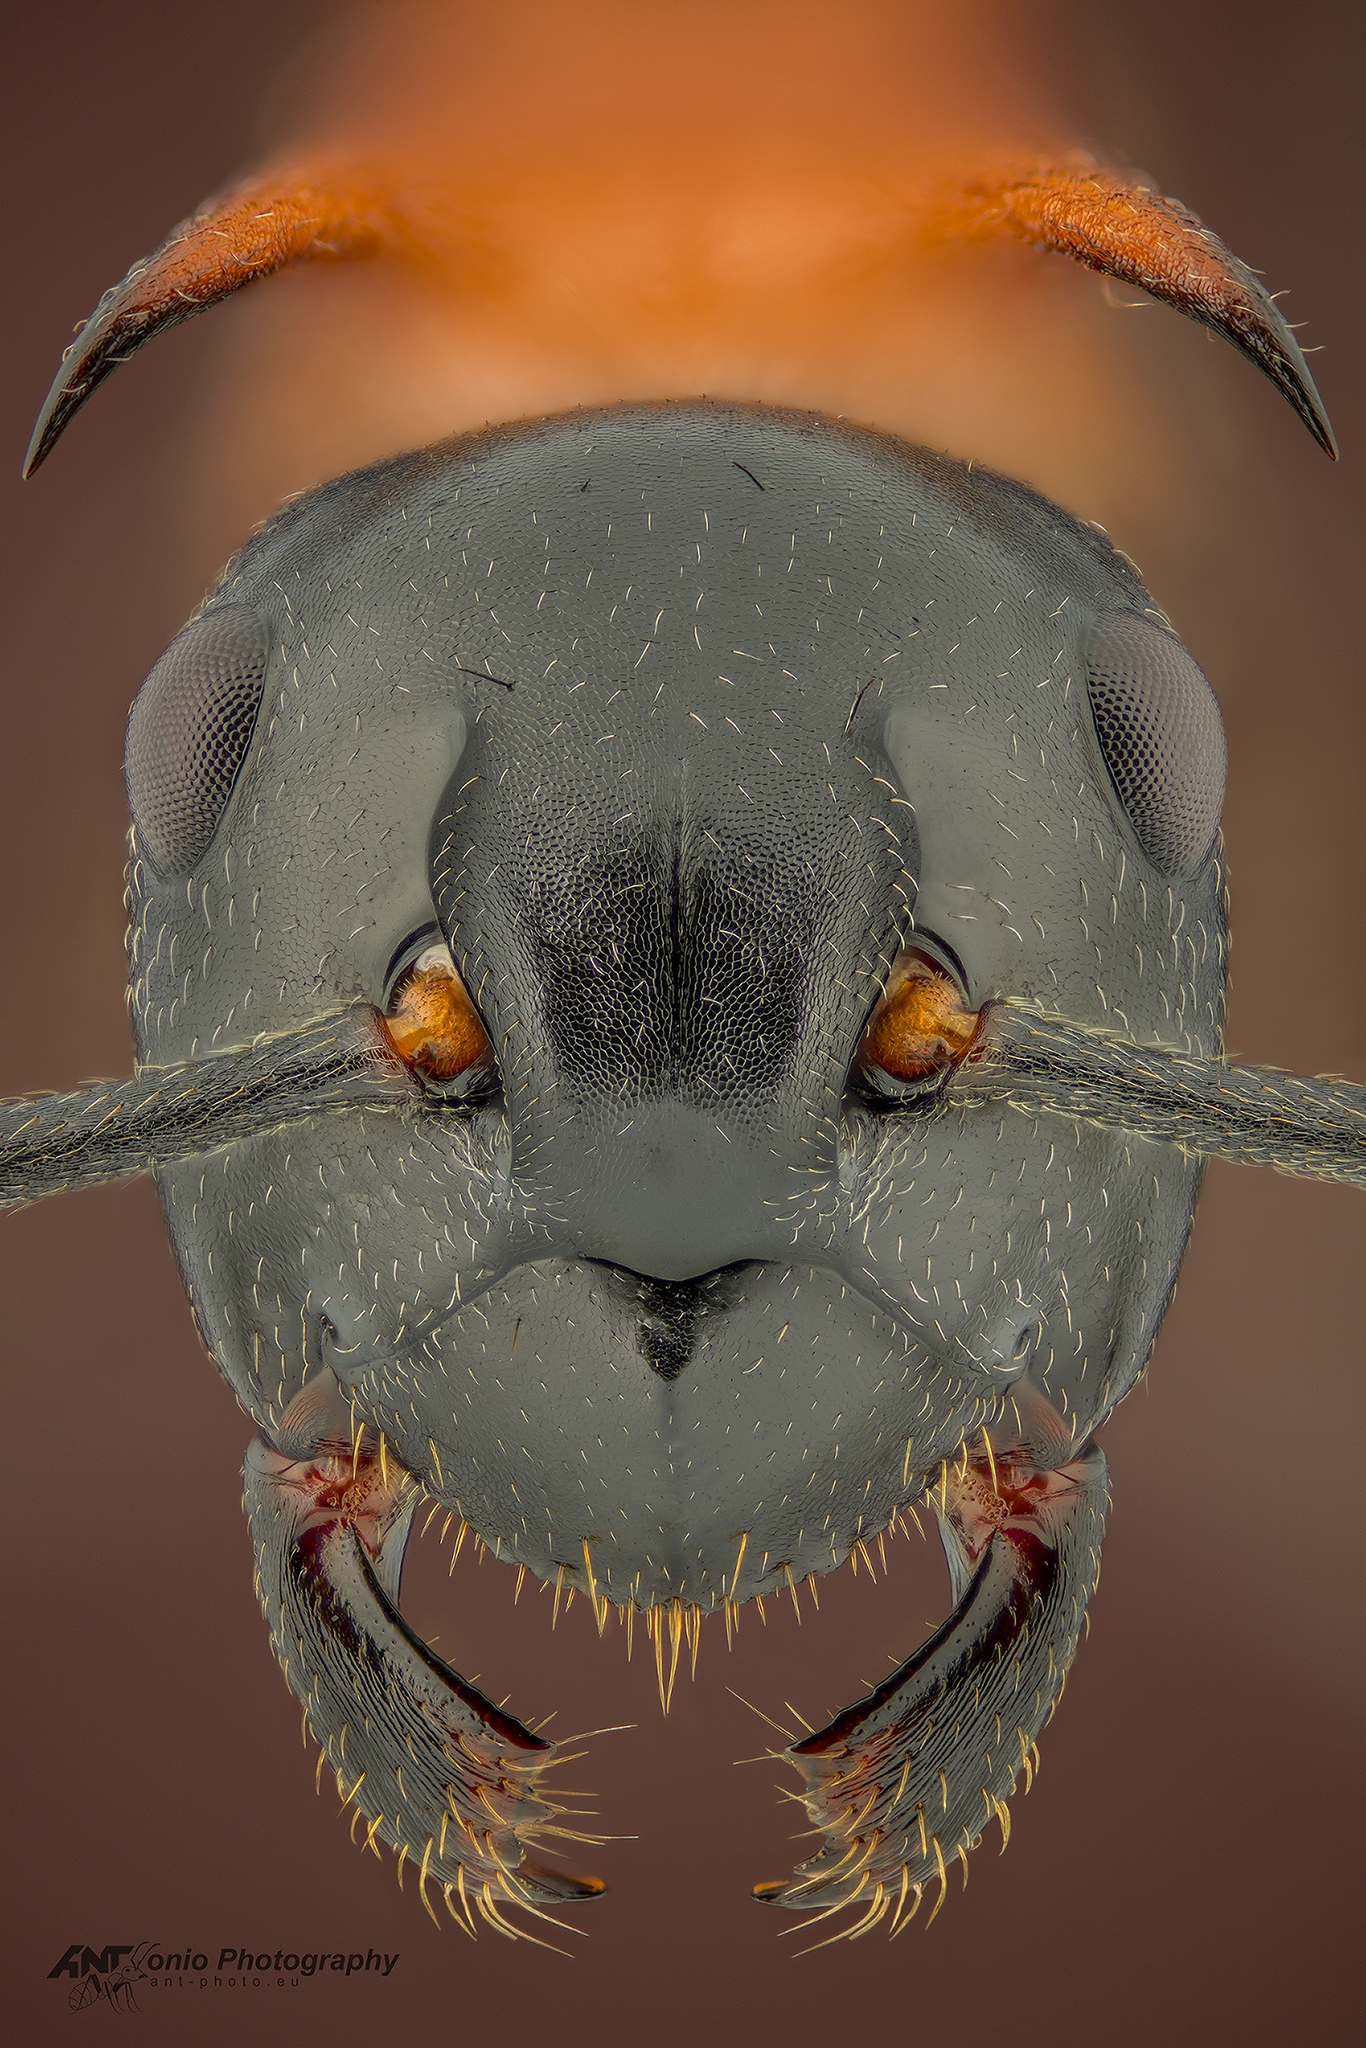 Ant Polyrhachis lamellidens worker, head